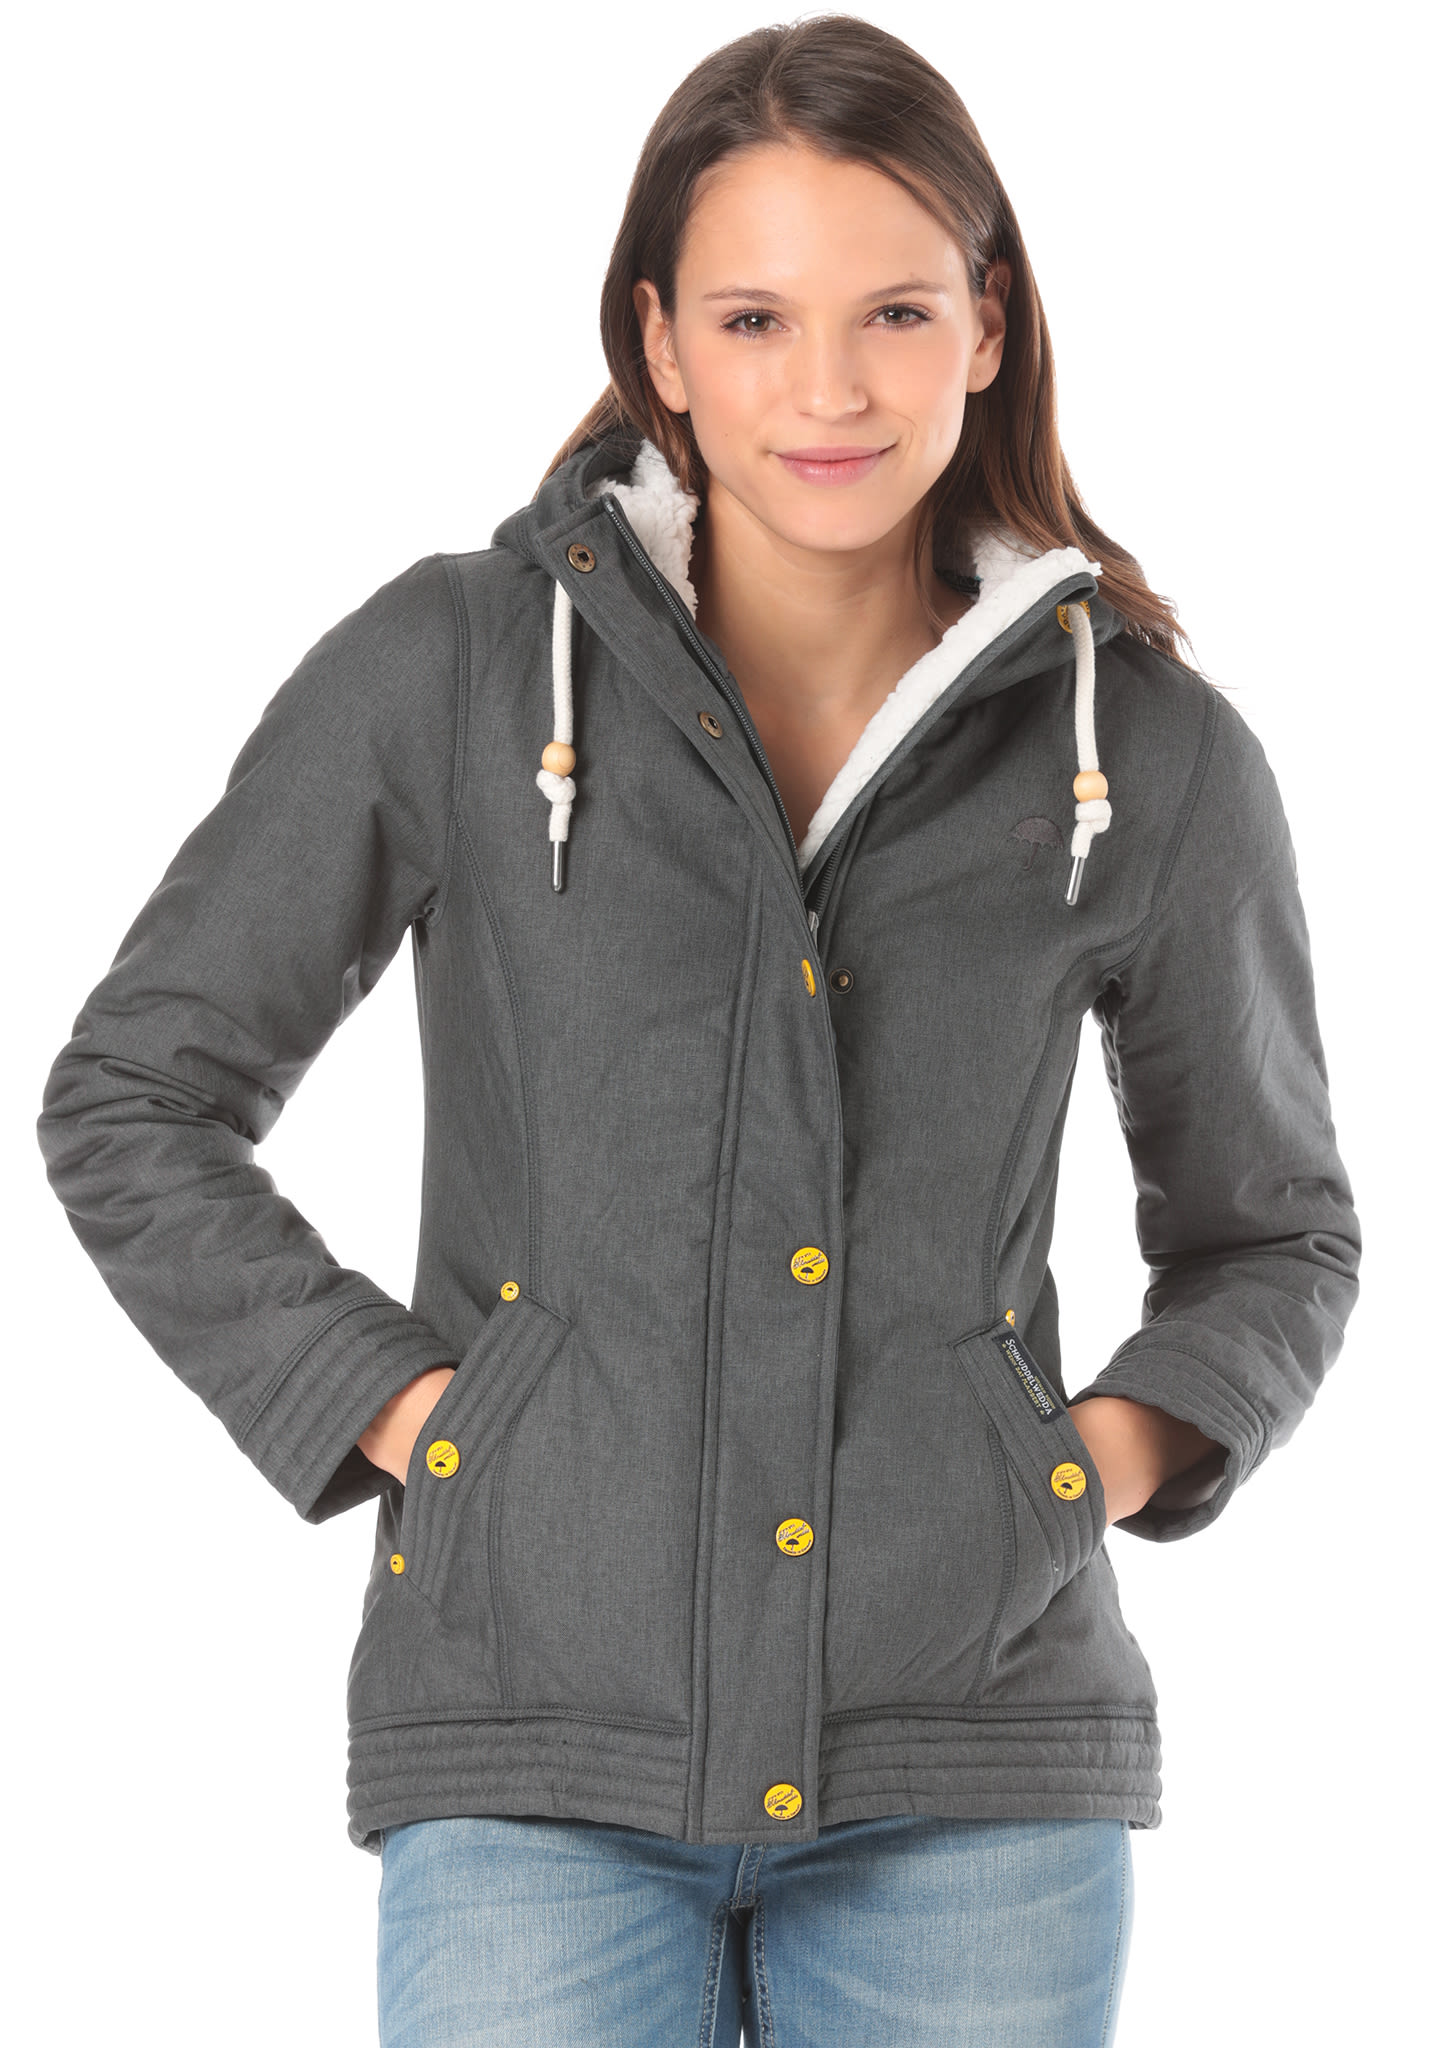 Anorak Schmuddelwedda Functional Grey Women Jacket Softshell For 5TcFKuJl13